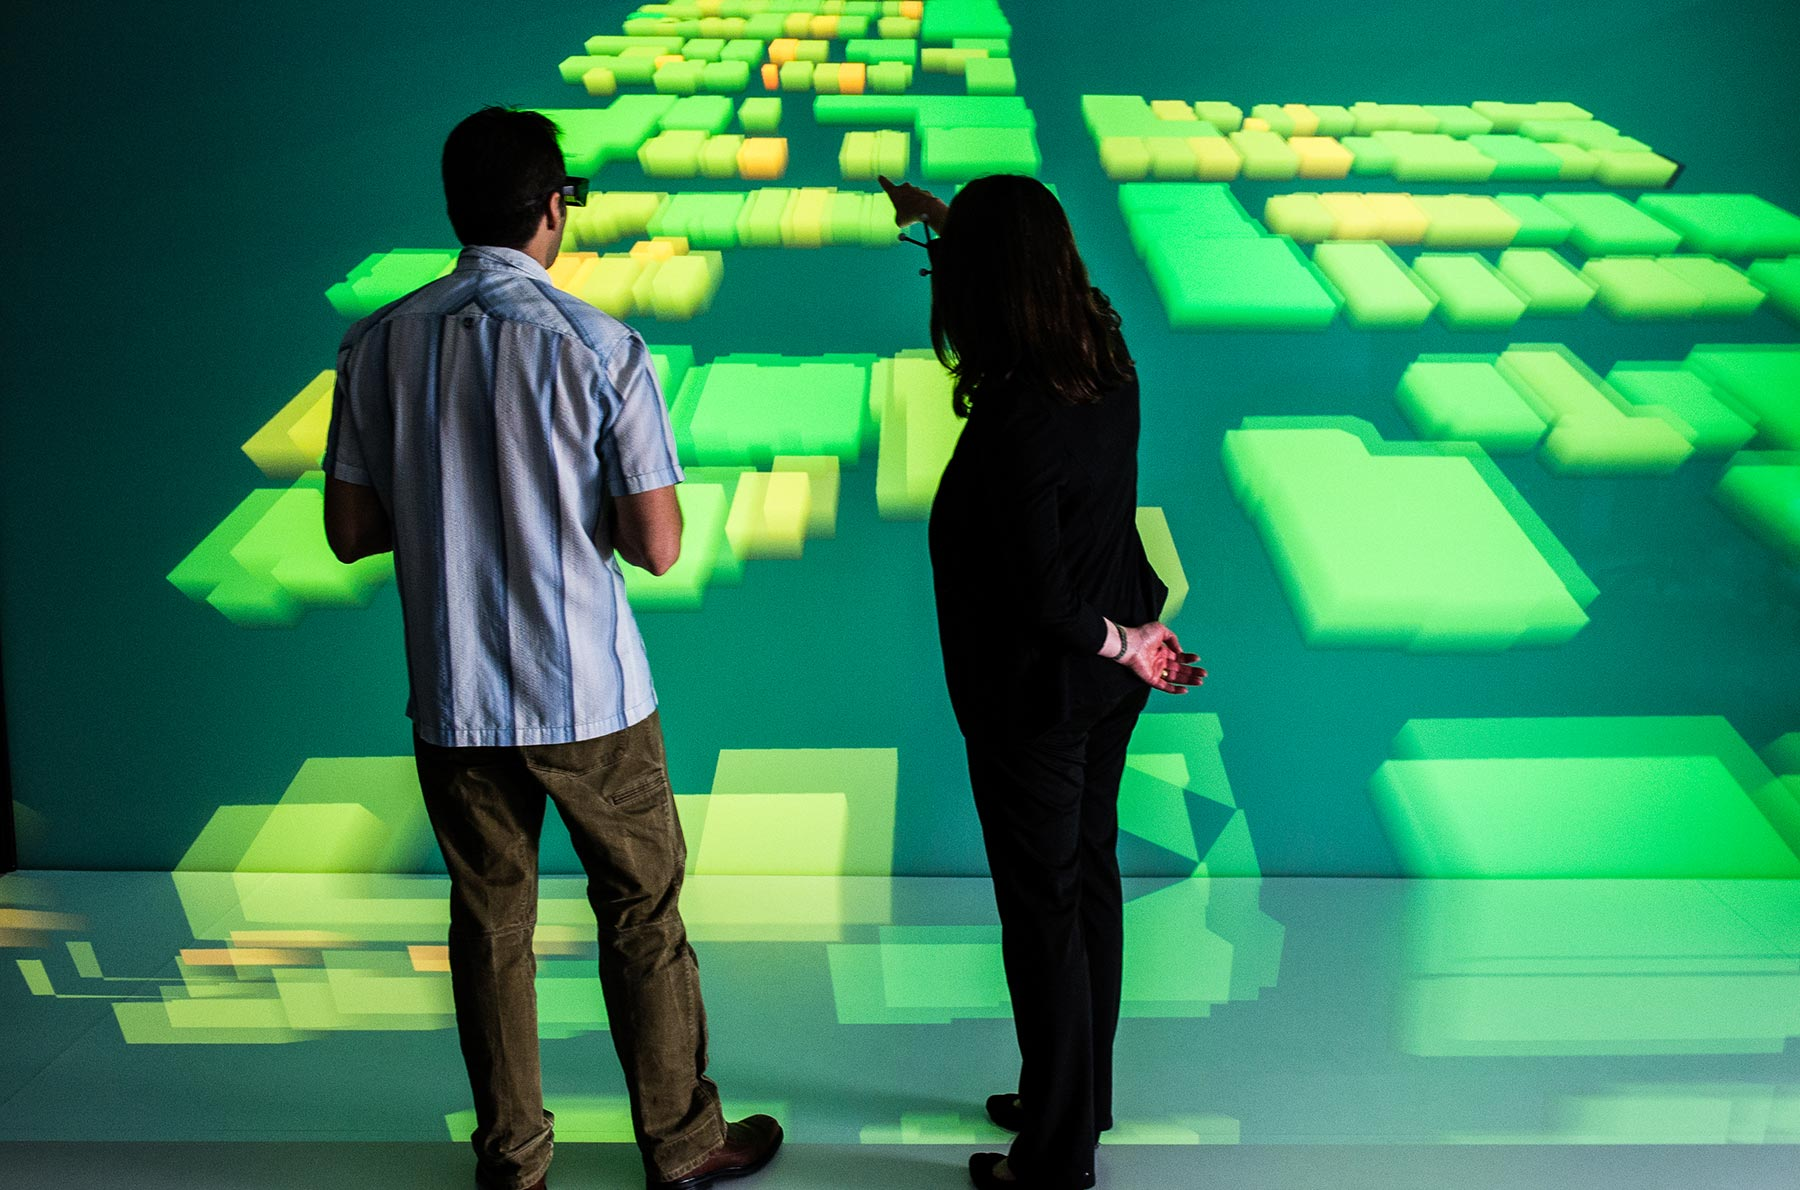 Photo of two people in Insight Center Visualization Room at the National Renewable Energy Laboratory looking at a community energy grid model.